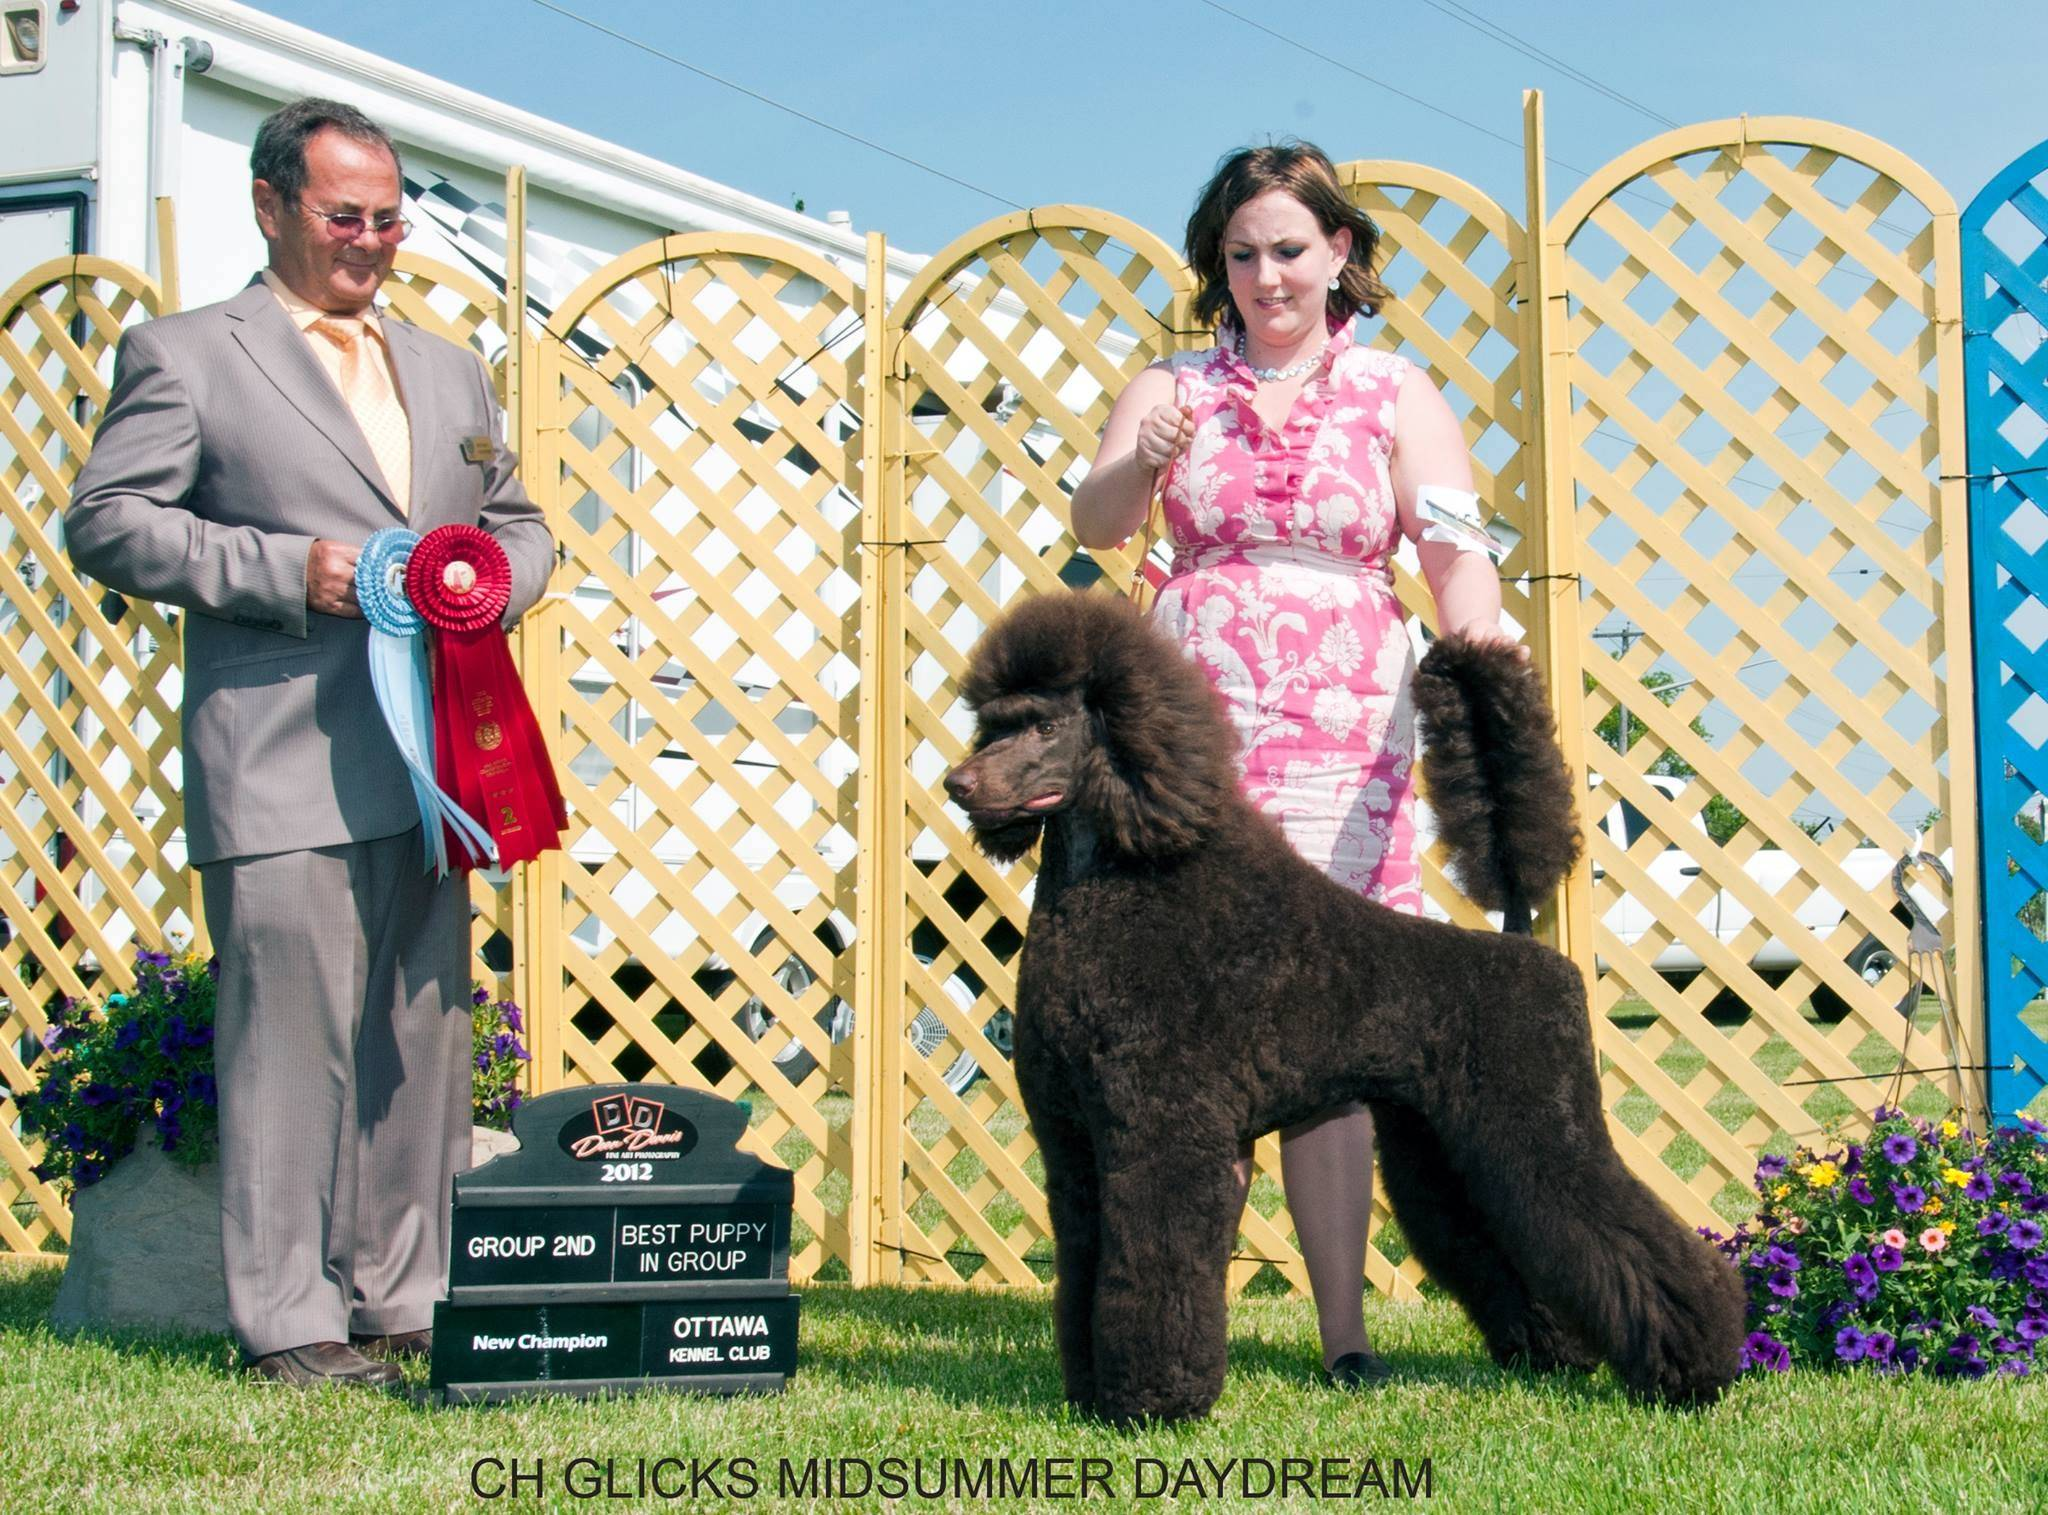 The sire of the litter: CH Glick's Midsummer Day Dream HIT CHIC, call name Guinness